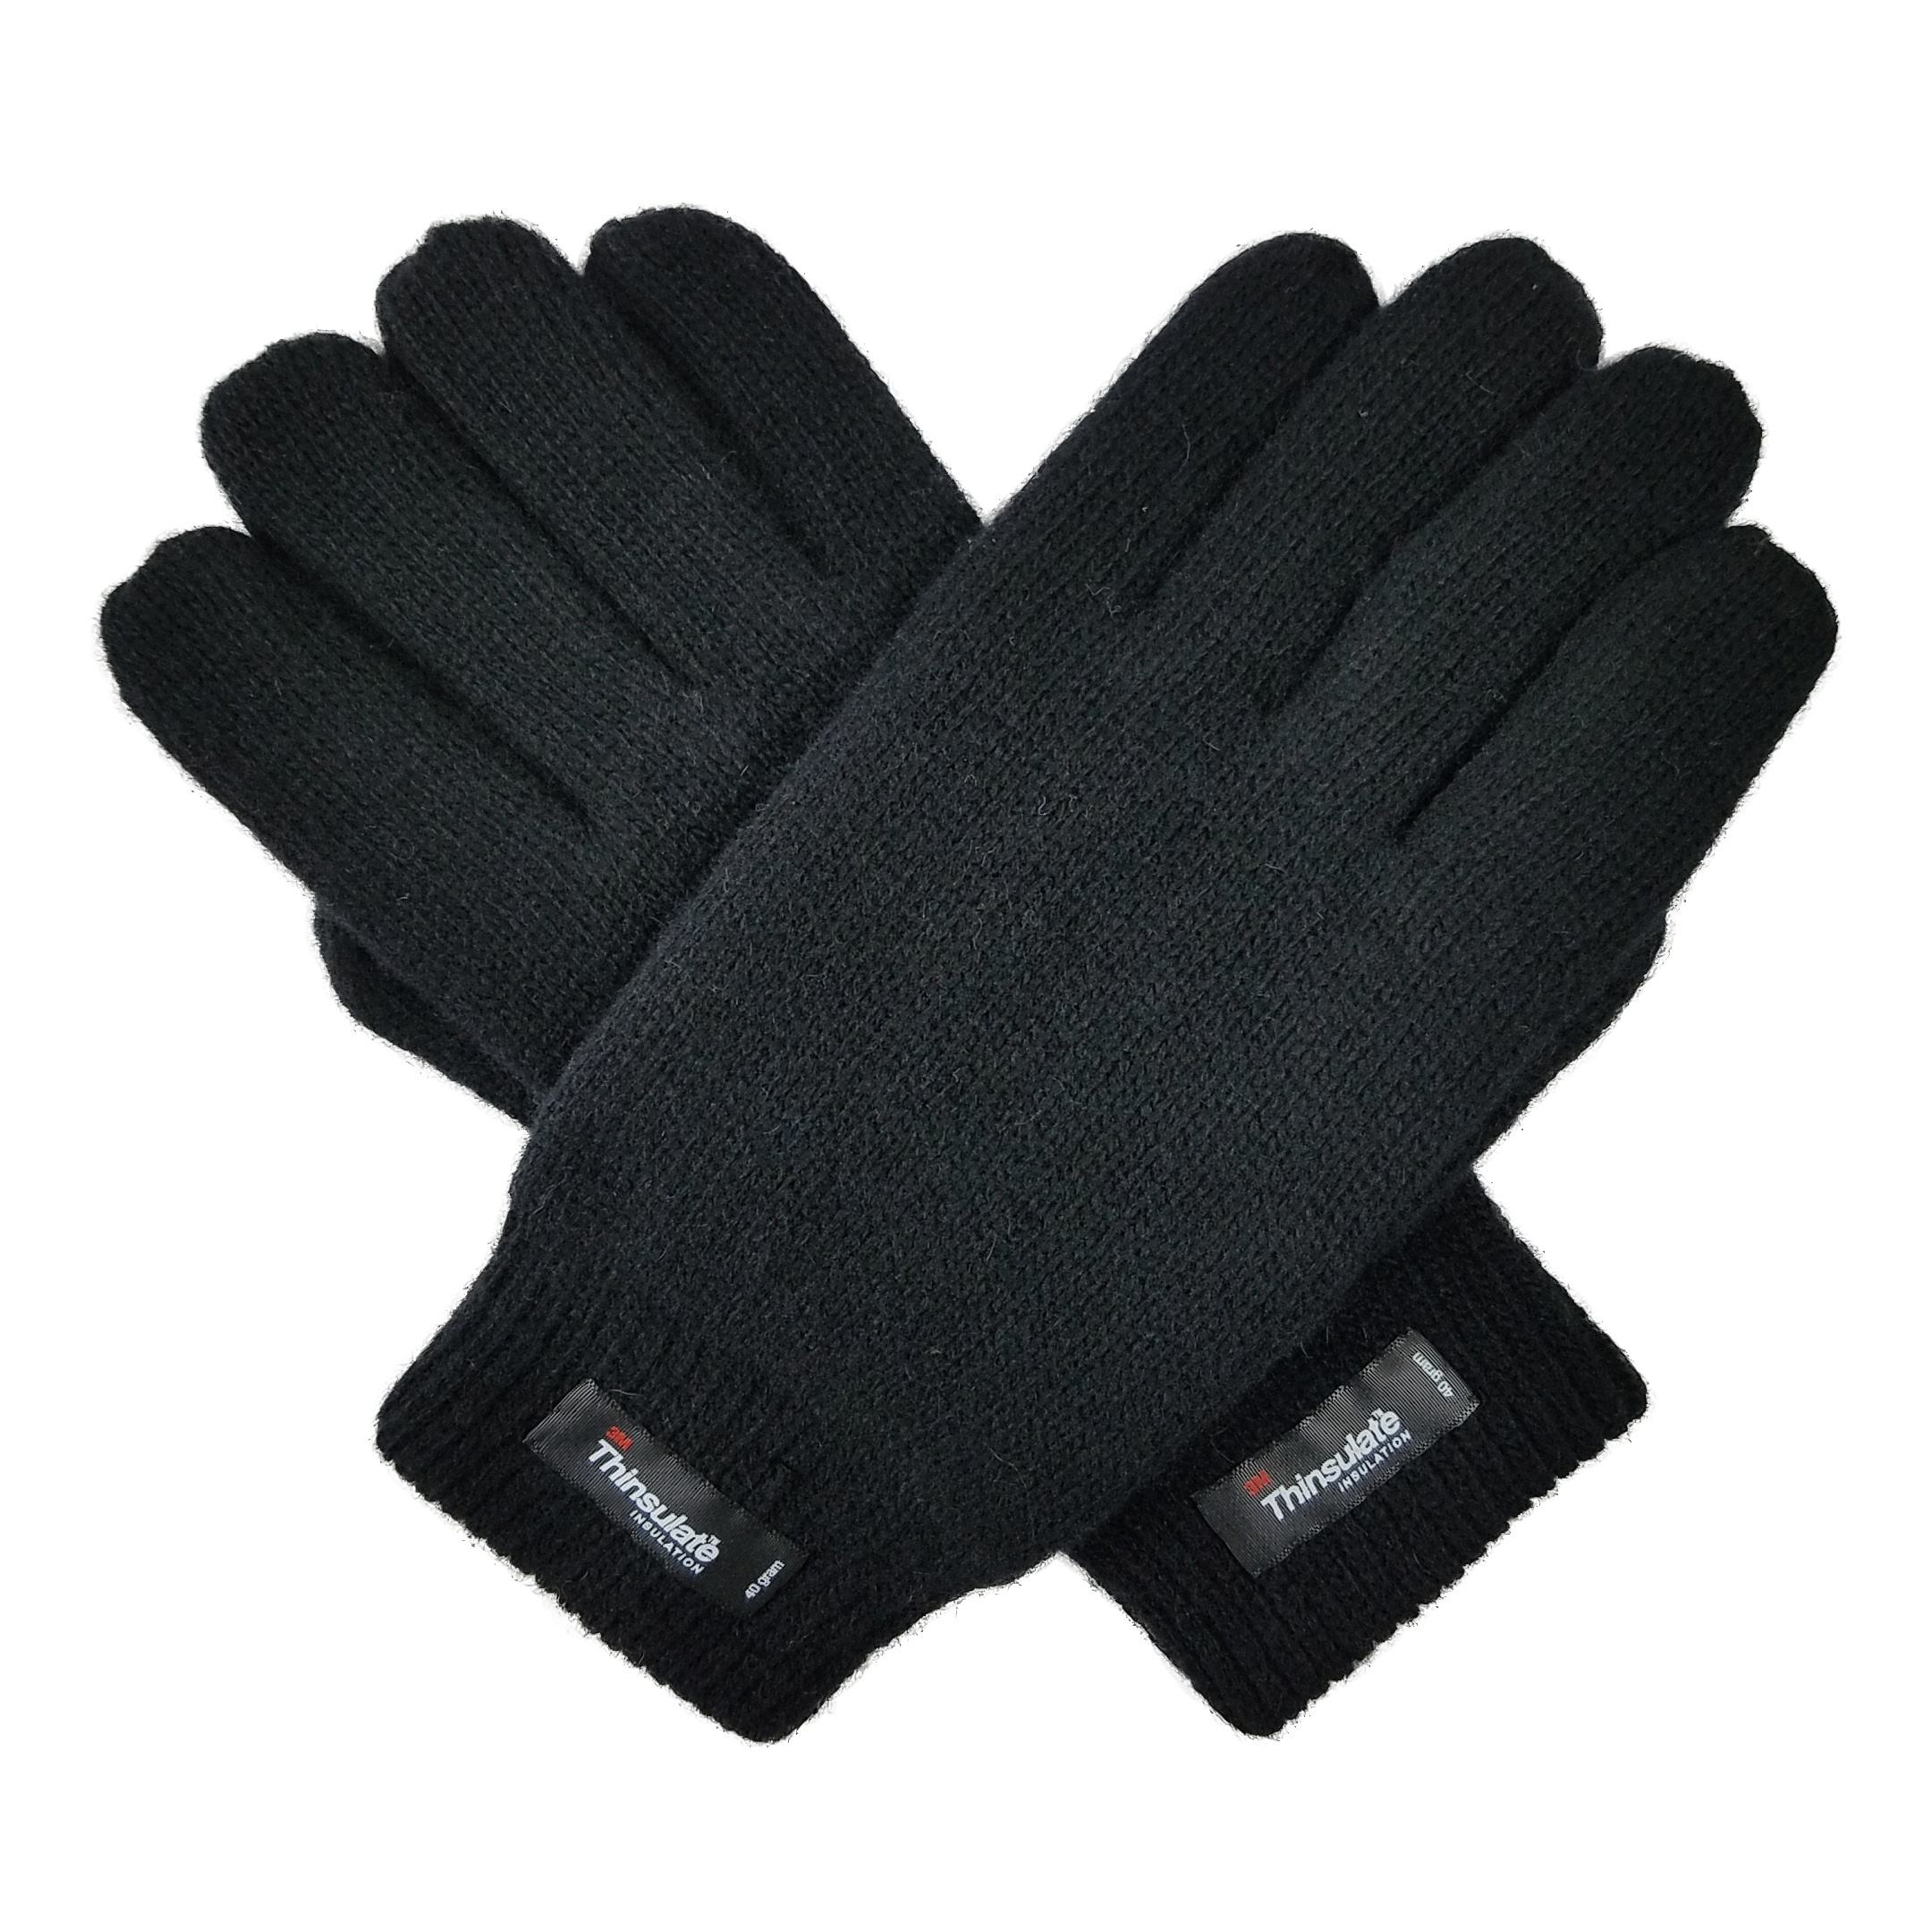 Men Winter Warm Wool Knitted Glove with Thinsulate Lining and Elastic Rib Cuff Working Cycling Cold Weather Gloves